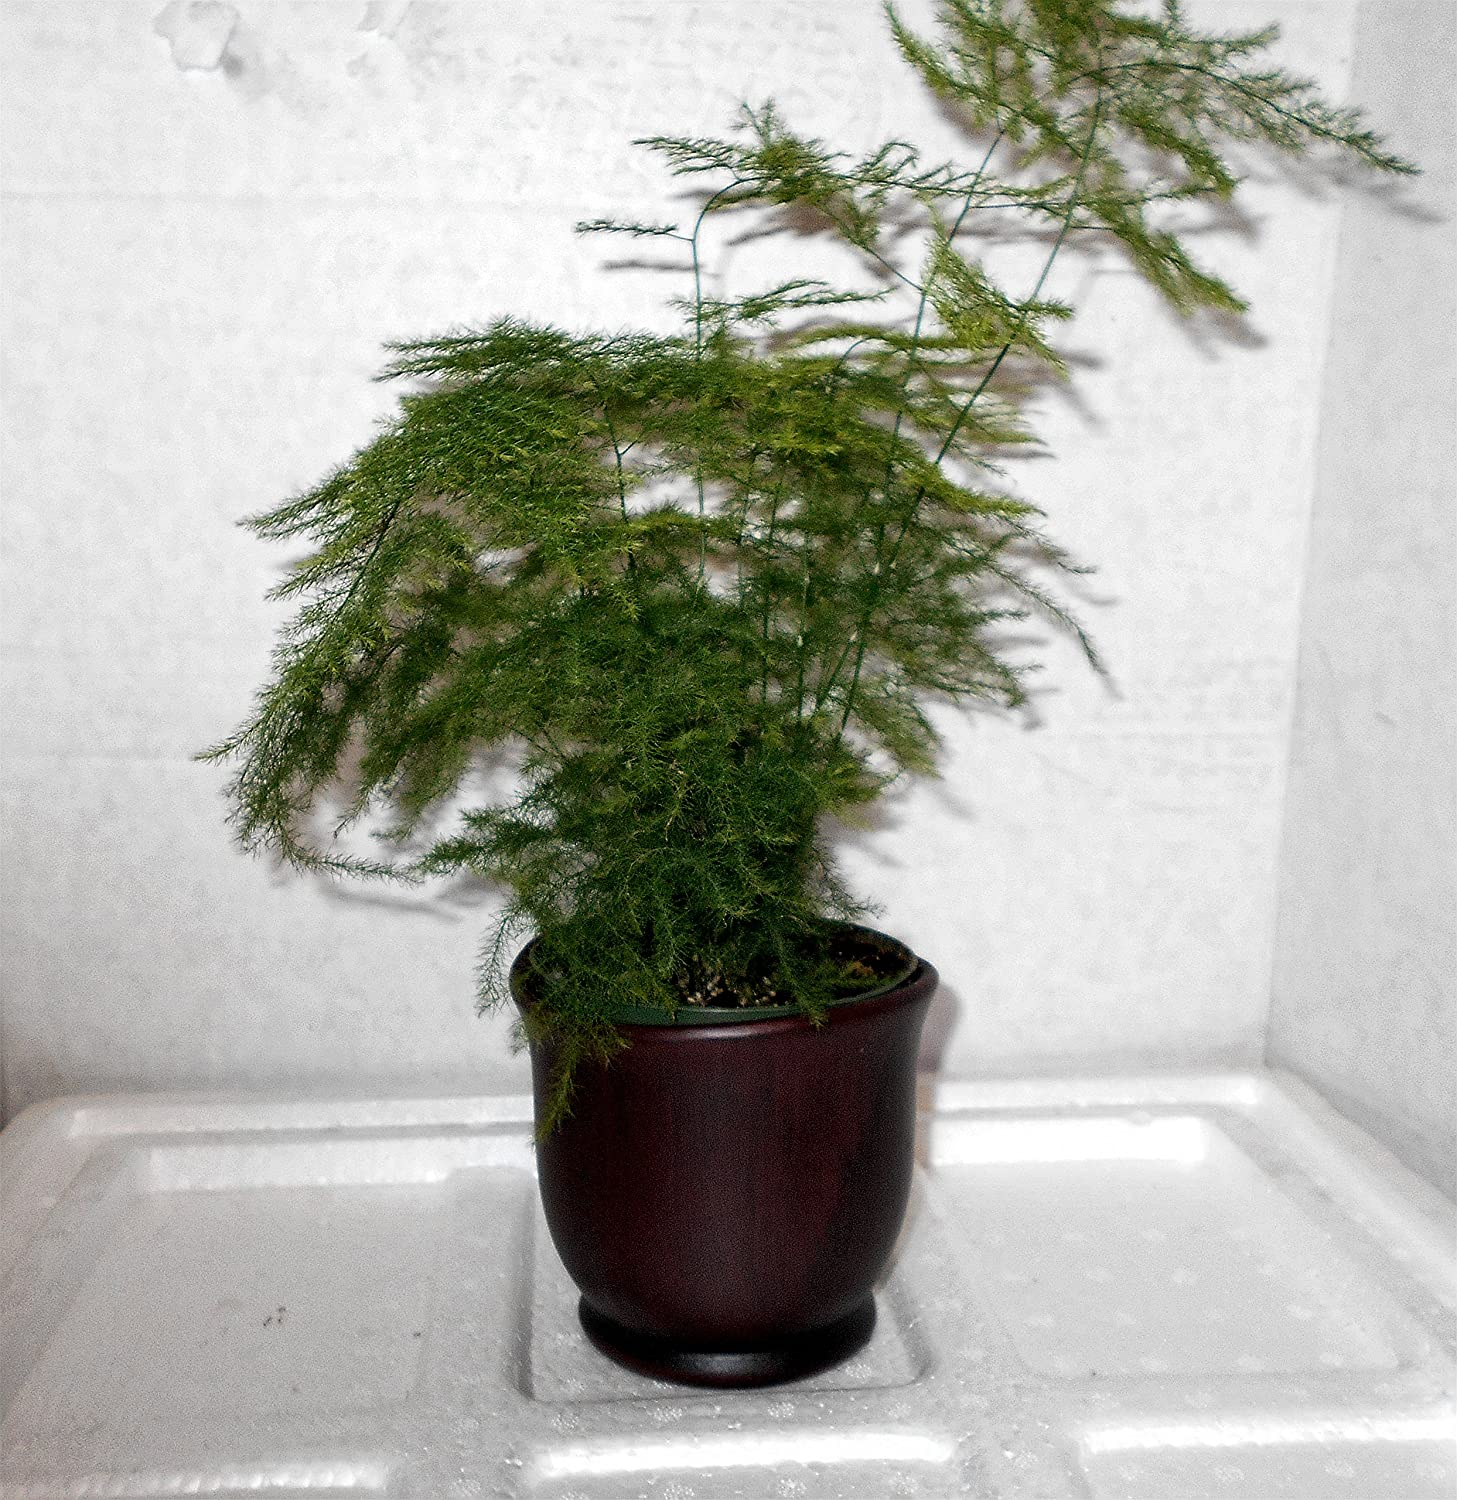 Amazon Com Fern Leaf Plumosus Asparagus Fern 4 Pot Ceramic Color Brown Pot W Fertilizer Gift Everything Else